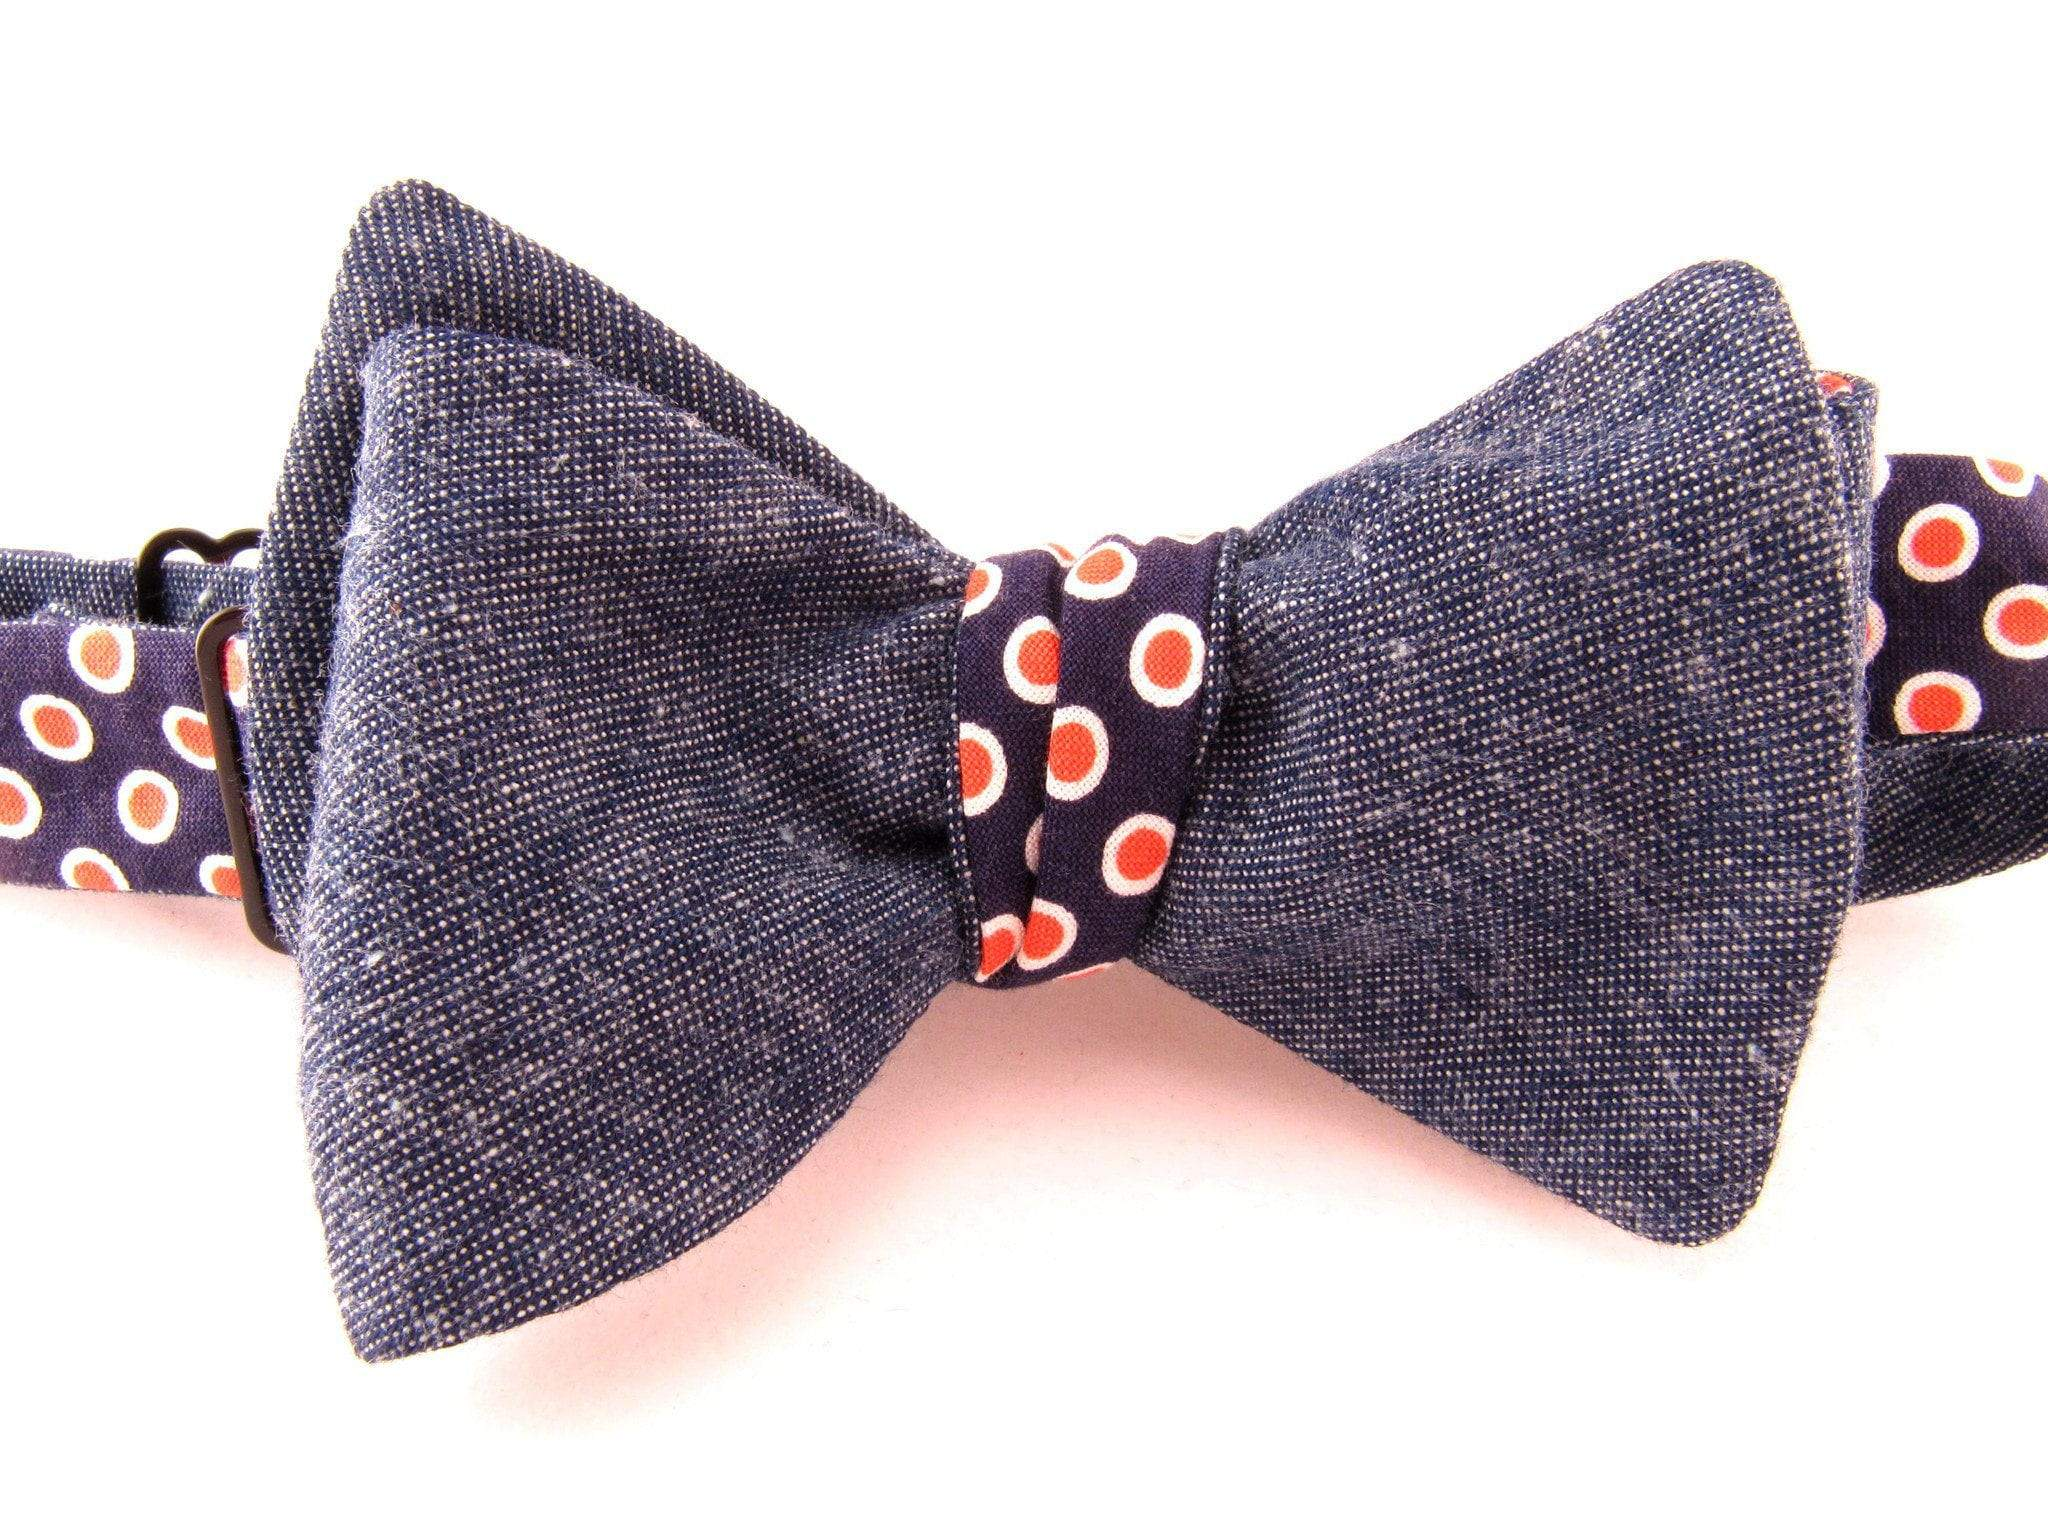 5c36c6edaf8aa ella-bing-freestyle-the-roman-haskell-reversible-chambray-cloth-bow-tie -321801803.jpg?v=1538862609